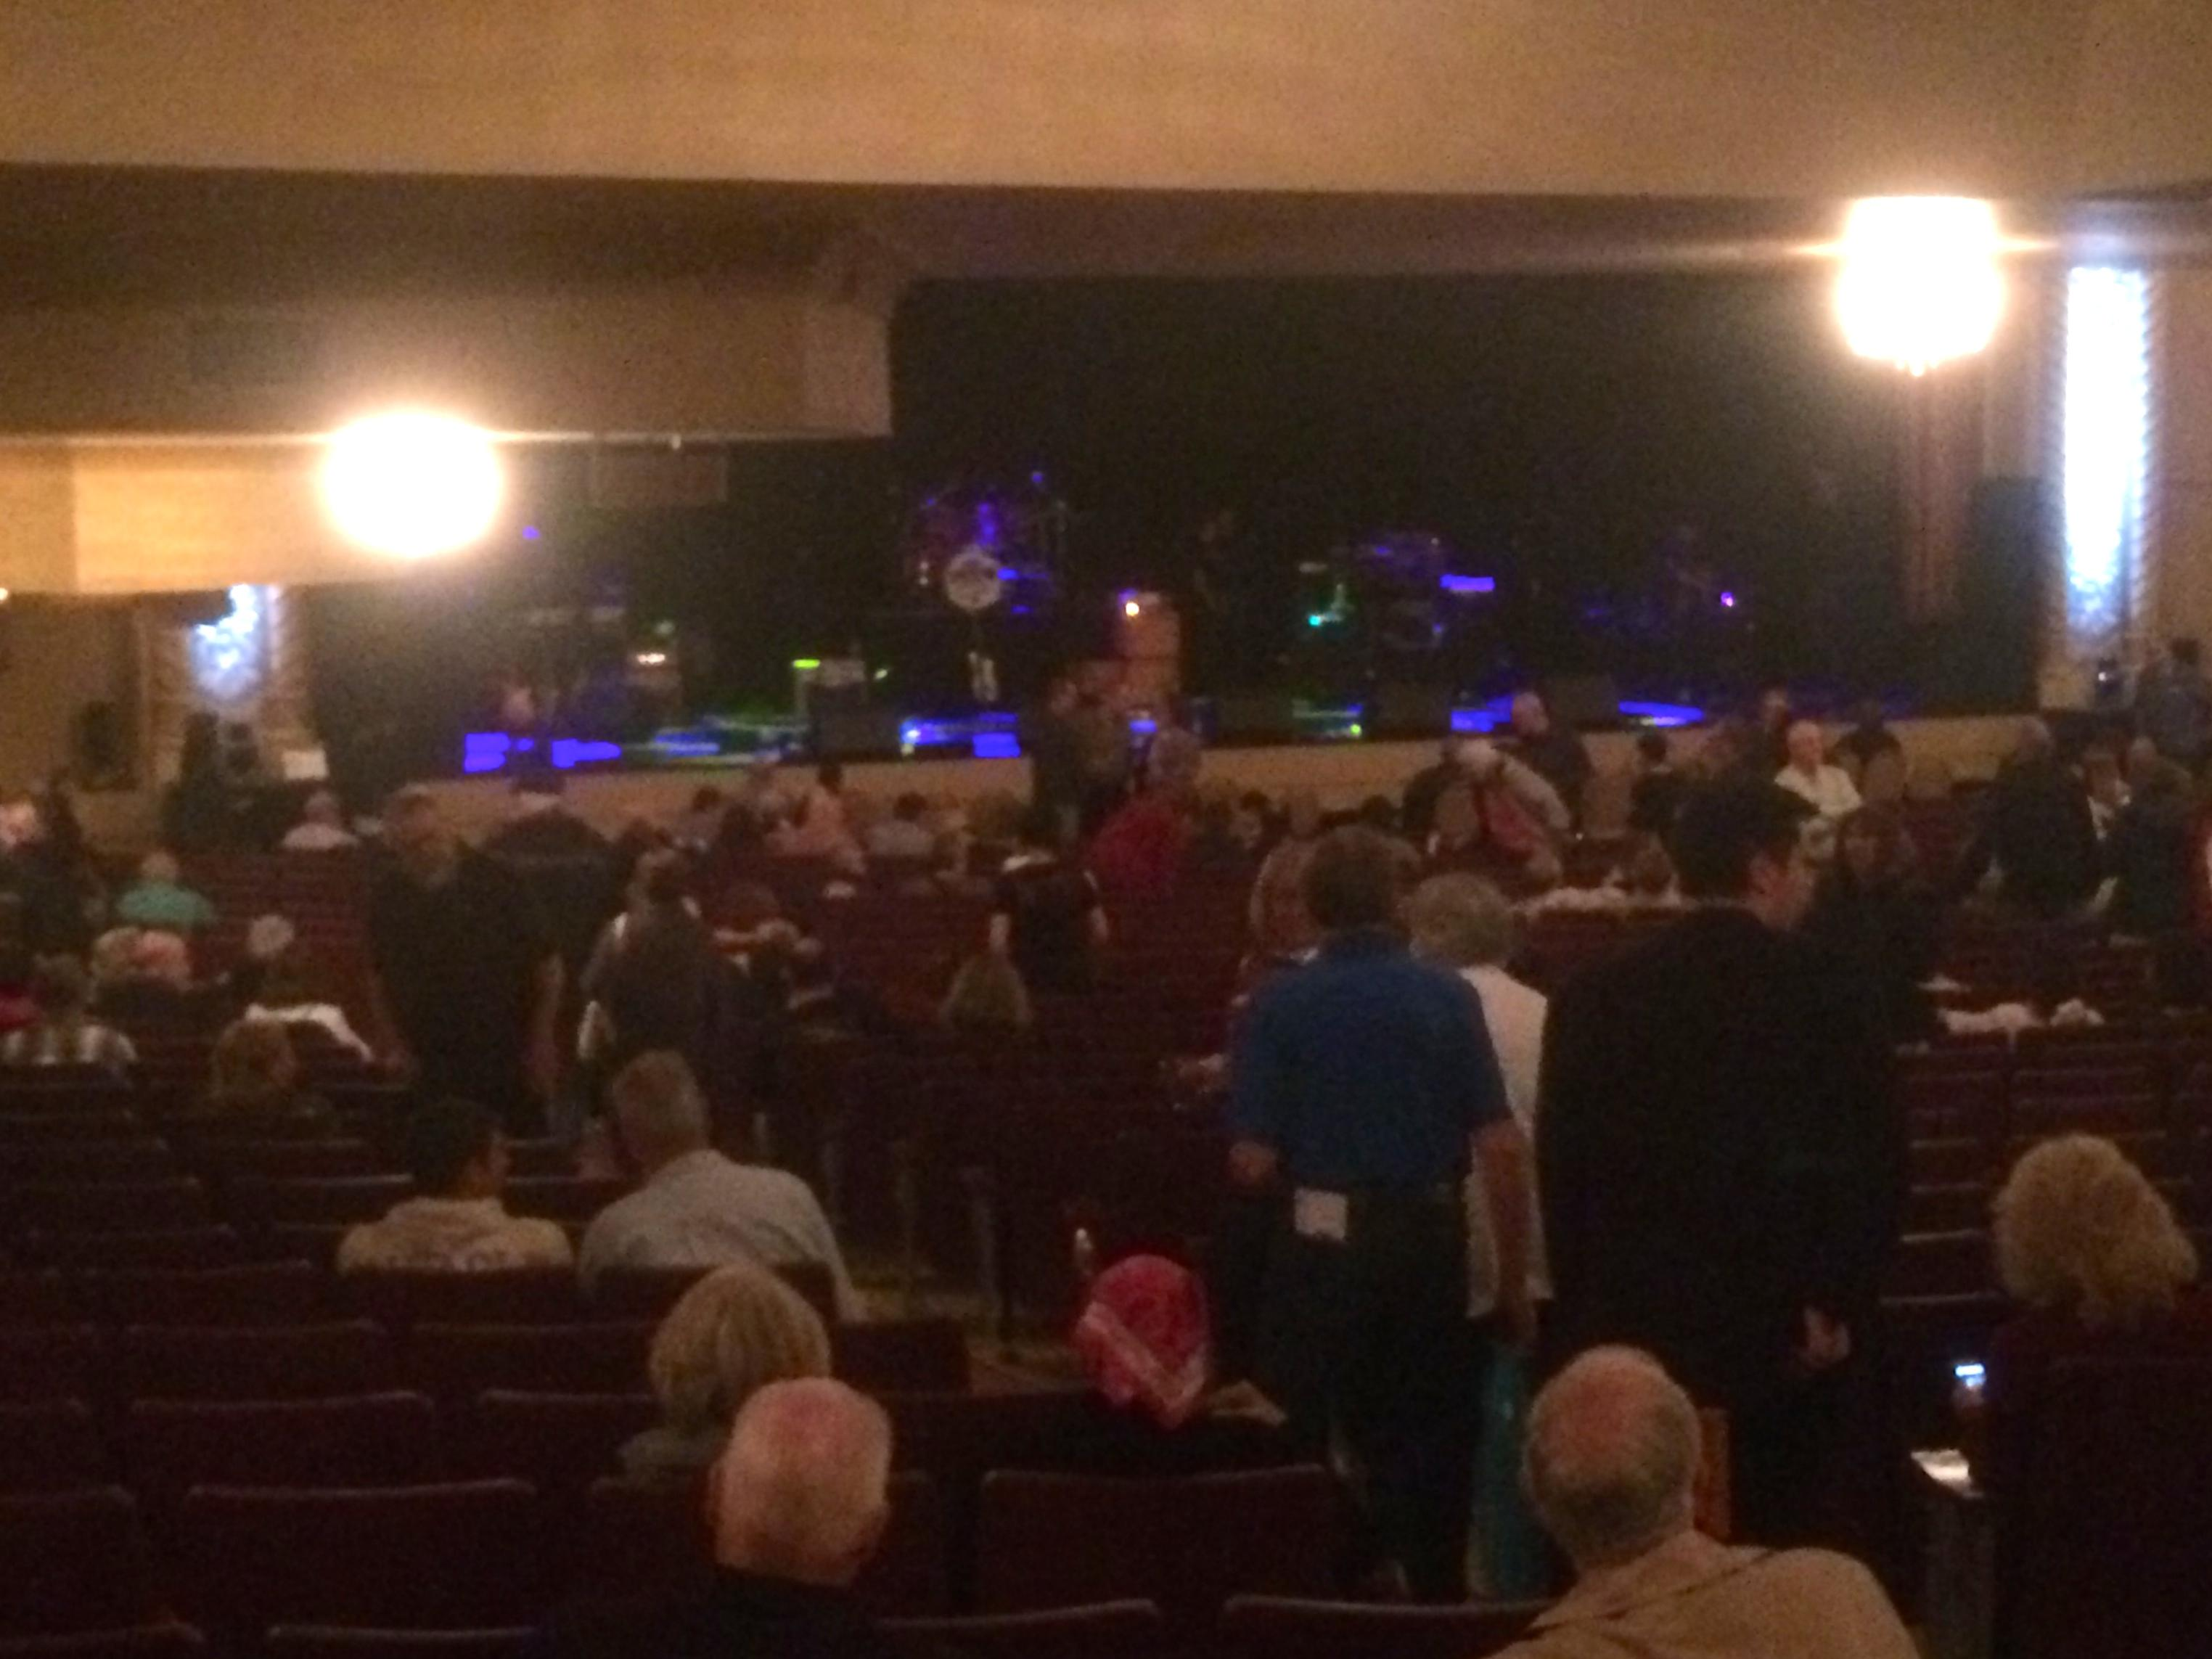 Genesee Theatre Section ORCH L Row EE Seat 5